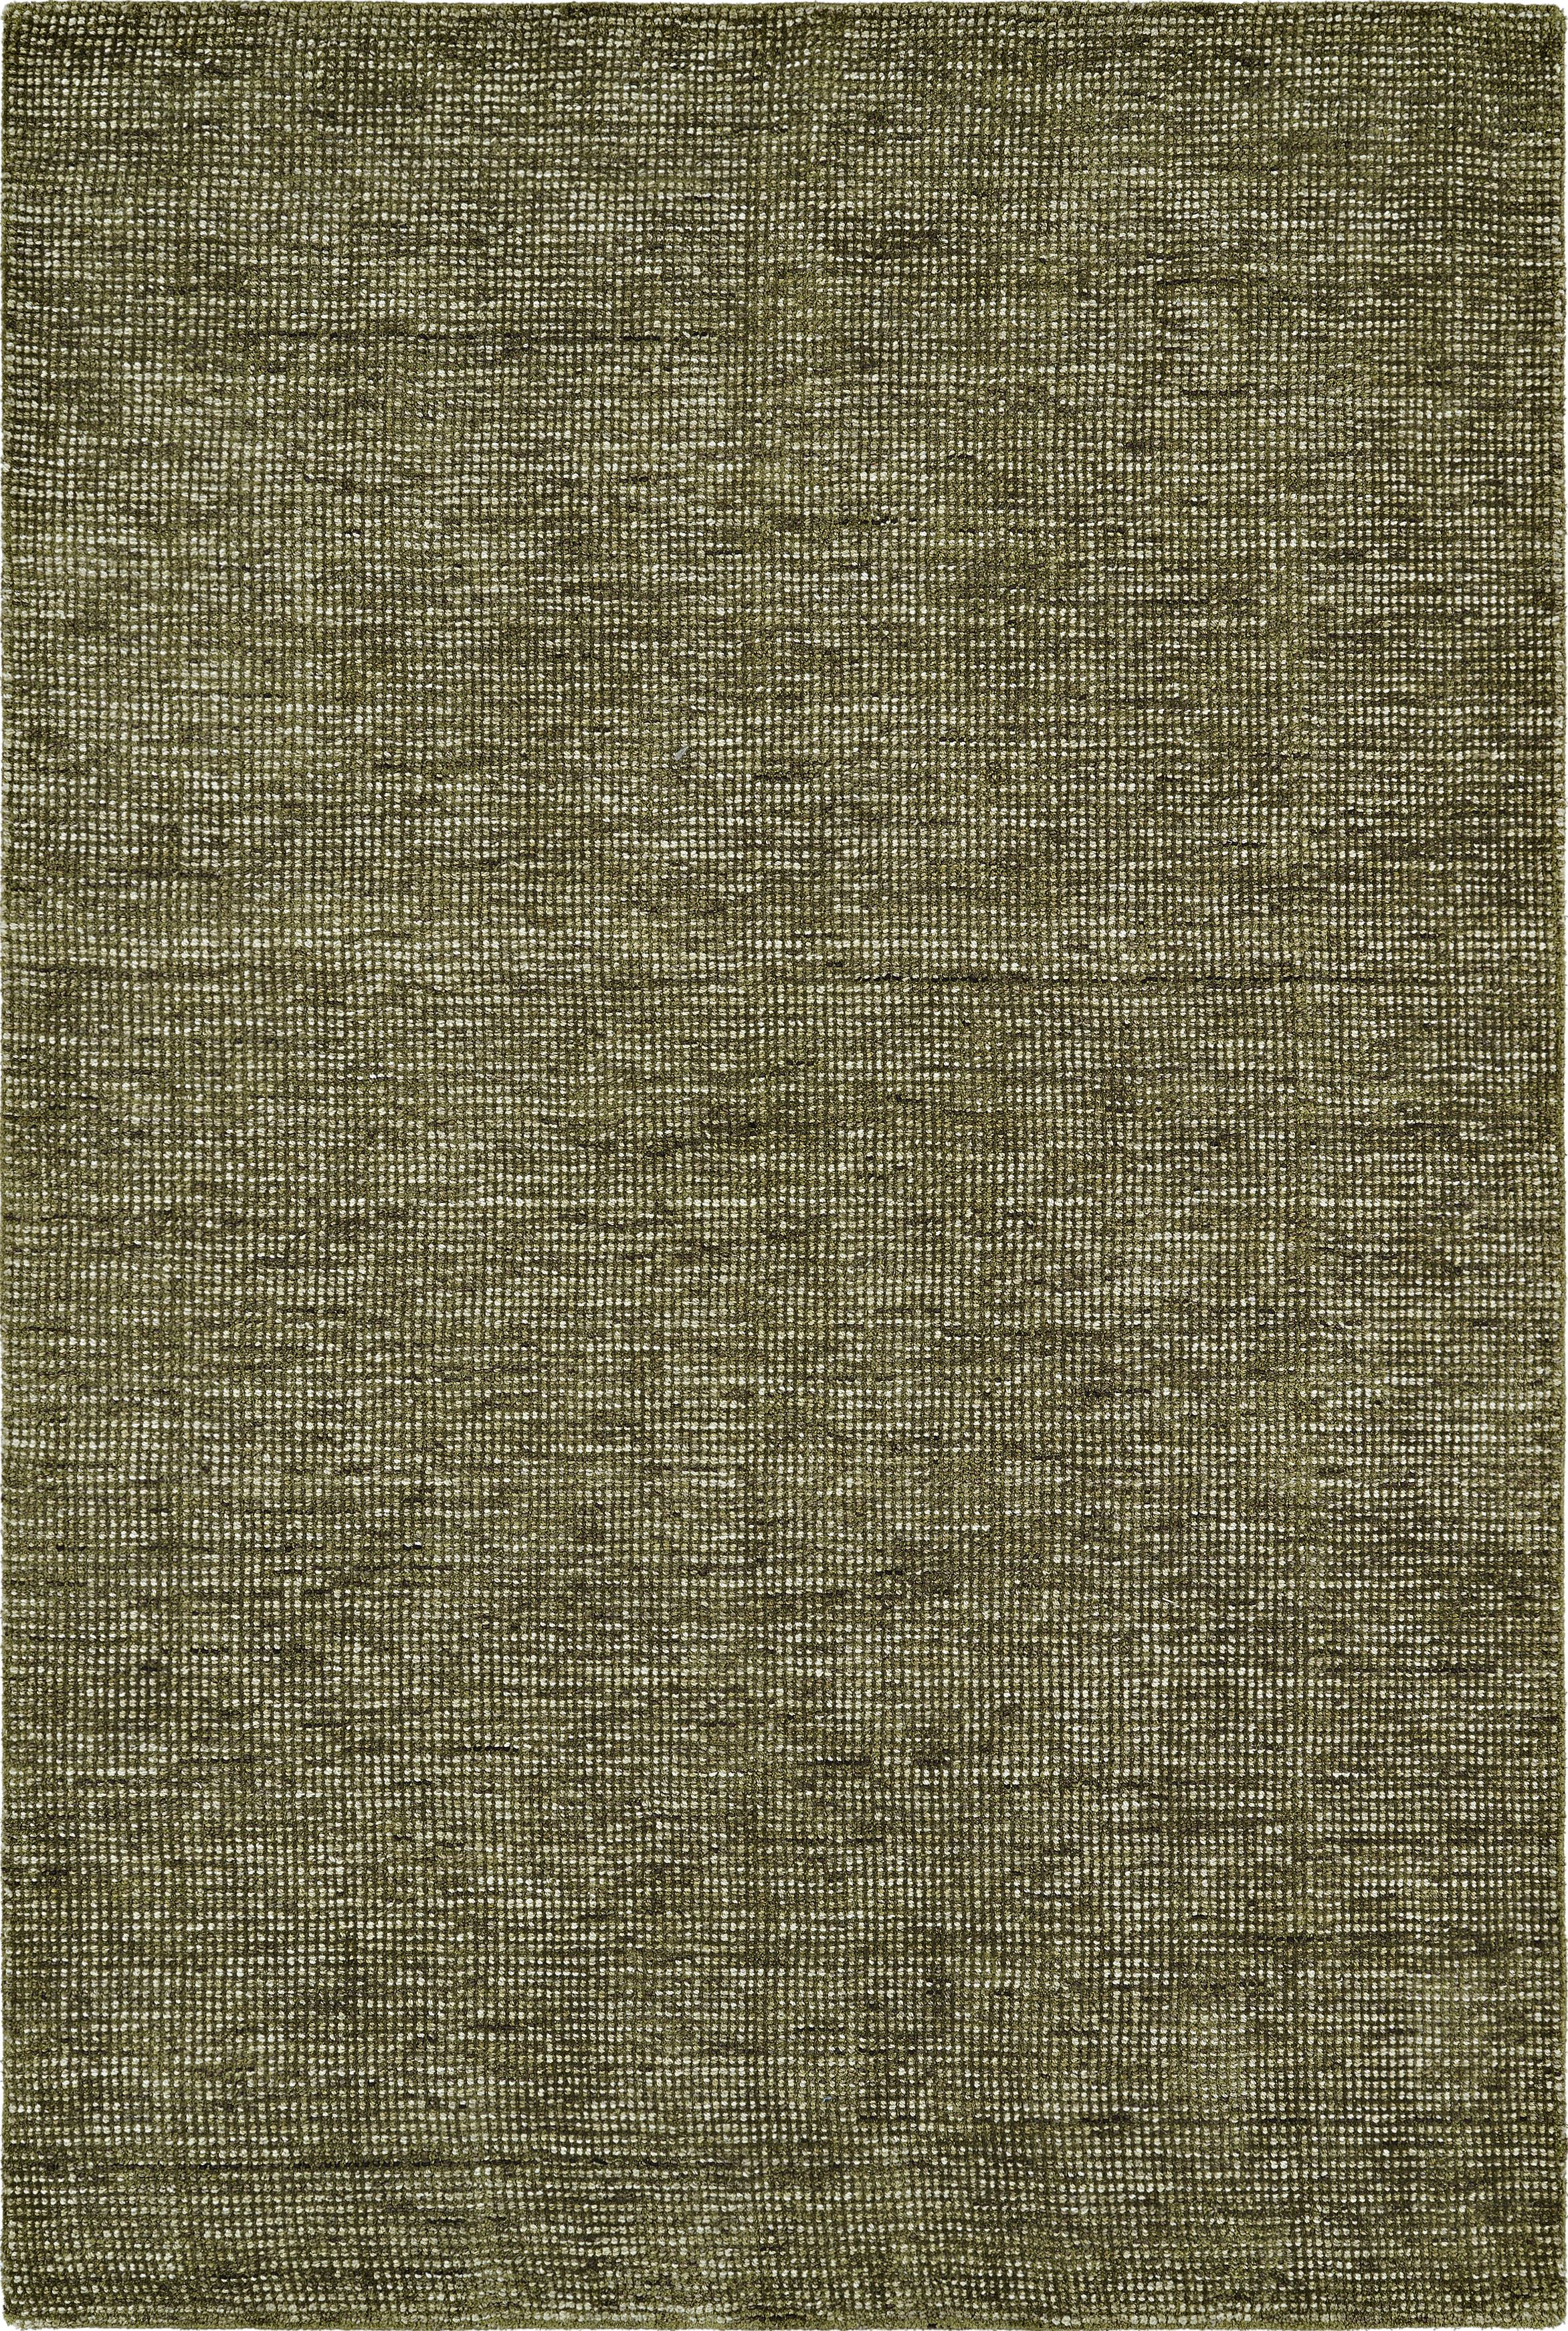 Toro Fern Premium Cut Viscose and Loop Pile Wool Rug | Abode and Company. Toro rugs are hand woven of premium cut pile viscose and loop pile wool in 7 rich colors.  They are warm and luxurious, with tonal yarn variations that allow each rug greater texture and softness.  These rugs blend easily into any setting.